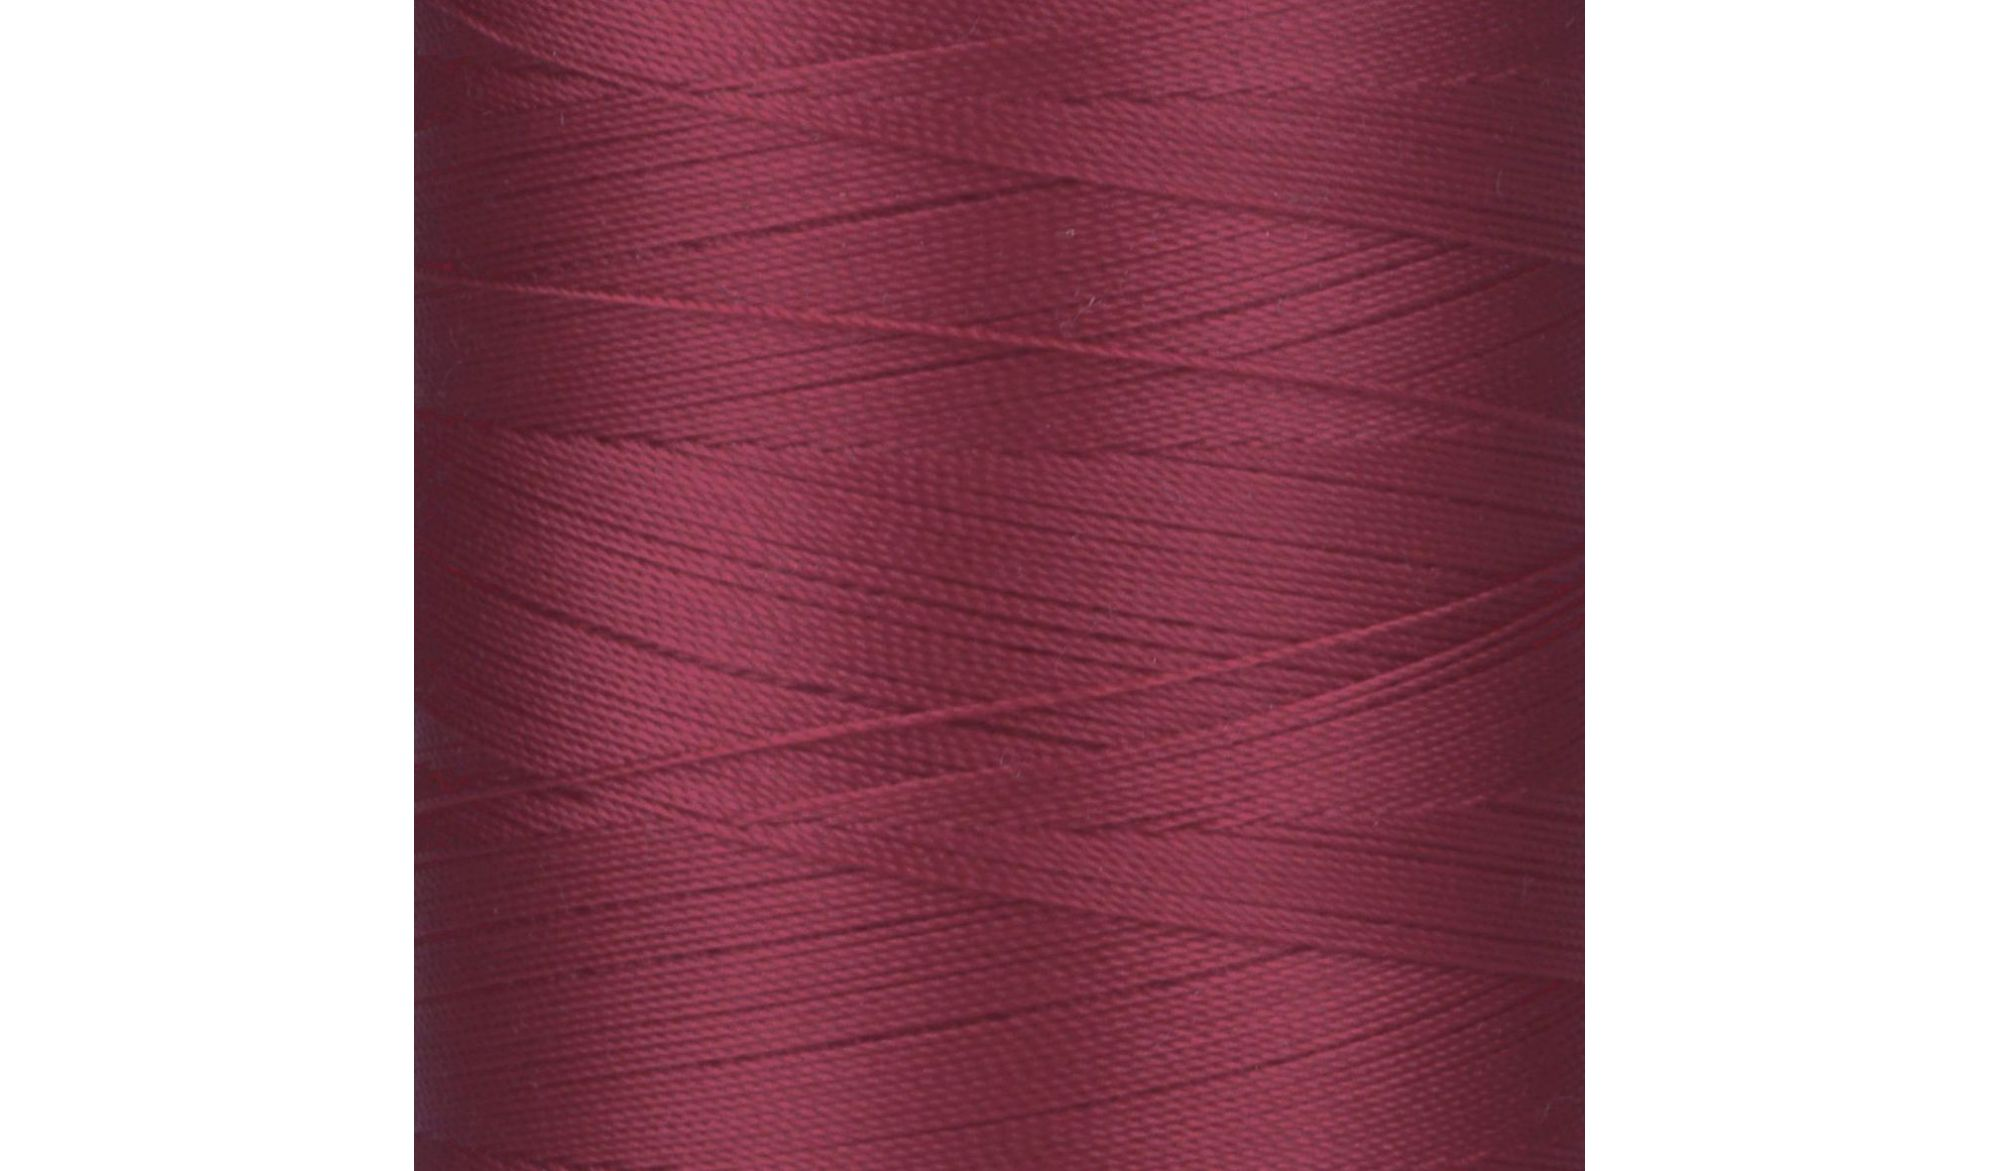 NICI 1000 10 ATOS 014 - Threads alt_nici_kolor_014 Replaces sewing Decorative quilting - Colour